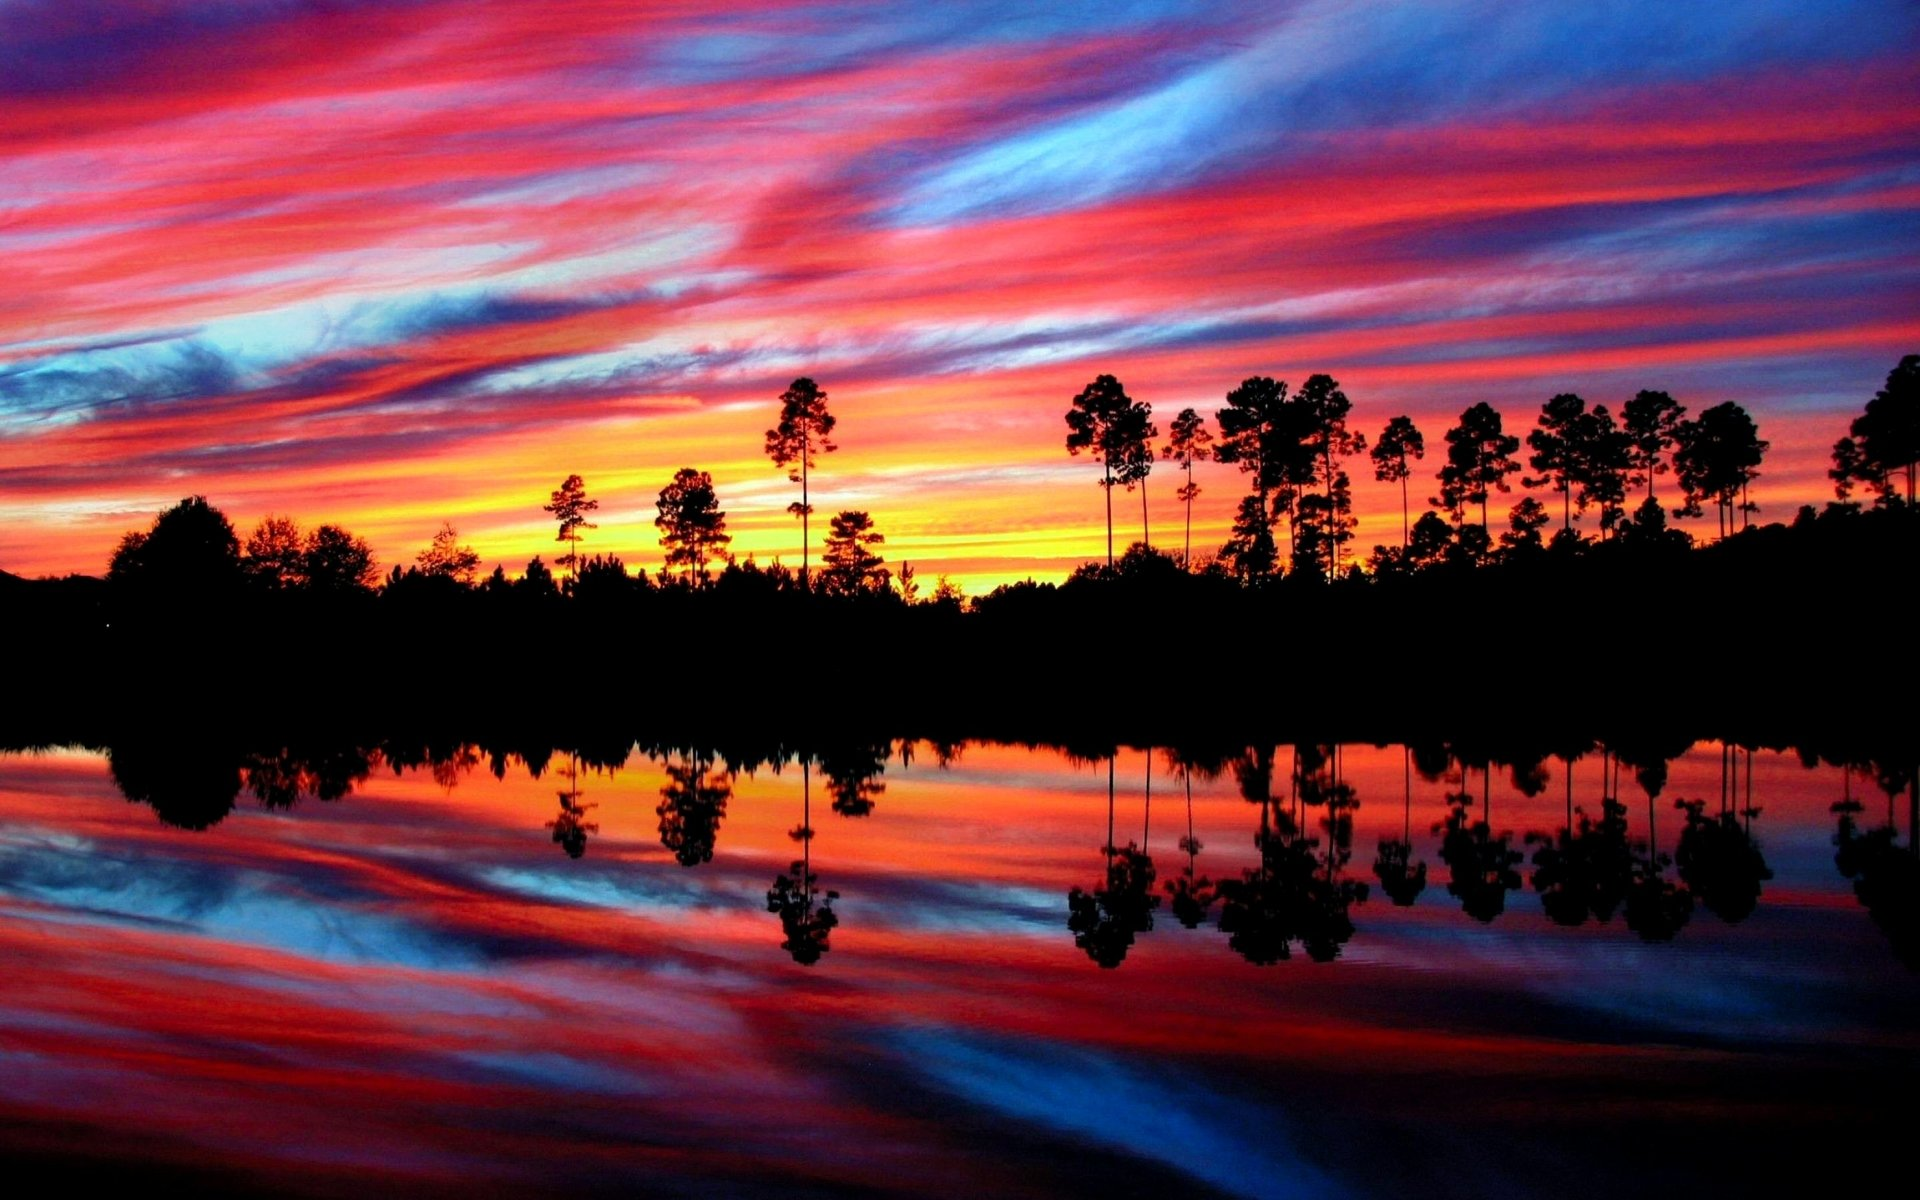 Earth - Sunset  Tree Colorful Red Blue Yellow Reflection Wallpaper